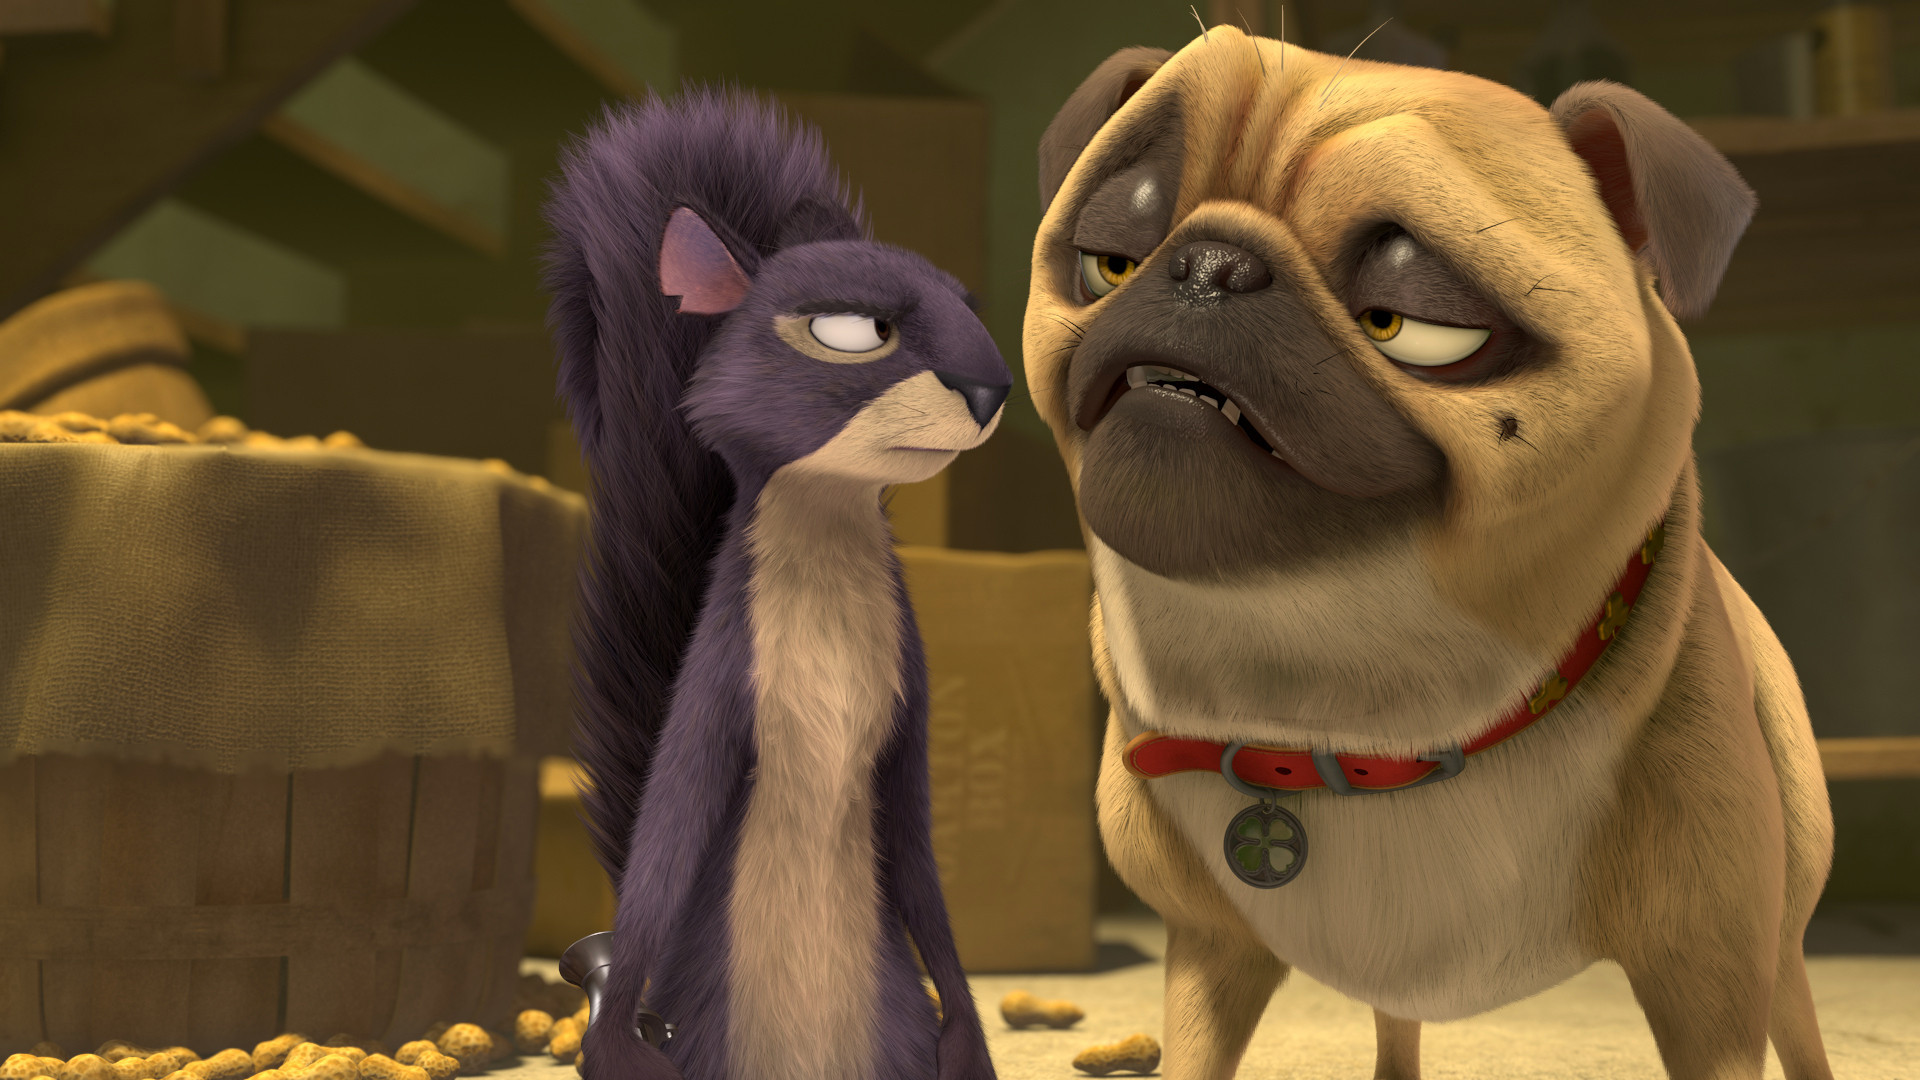 'The Nut Job 2' is a well acted but perfunctory children's movie